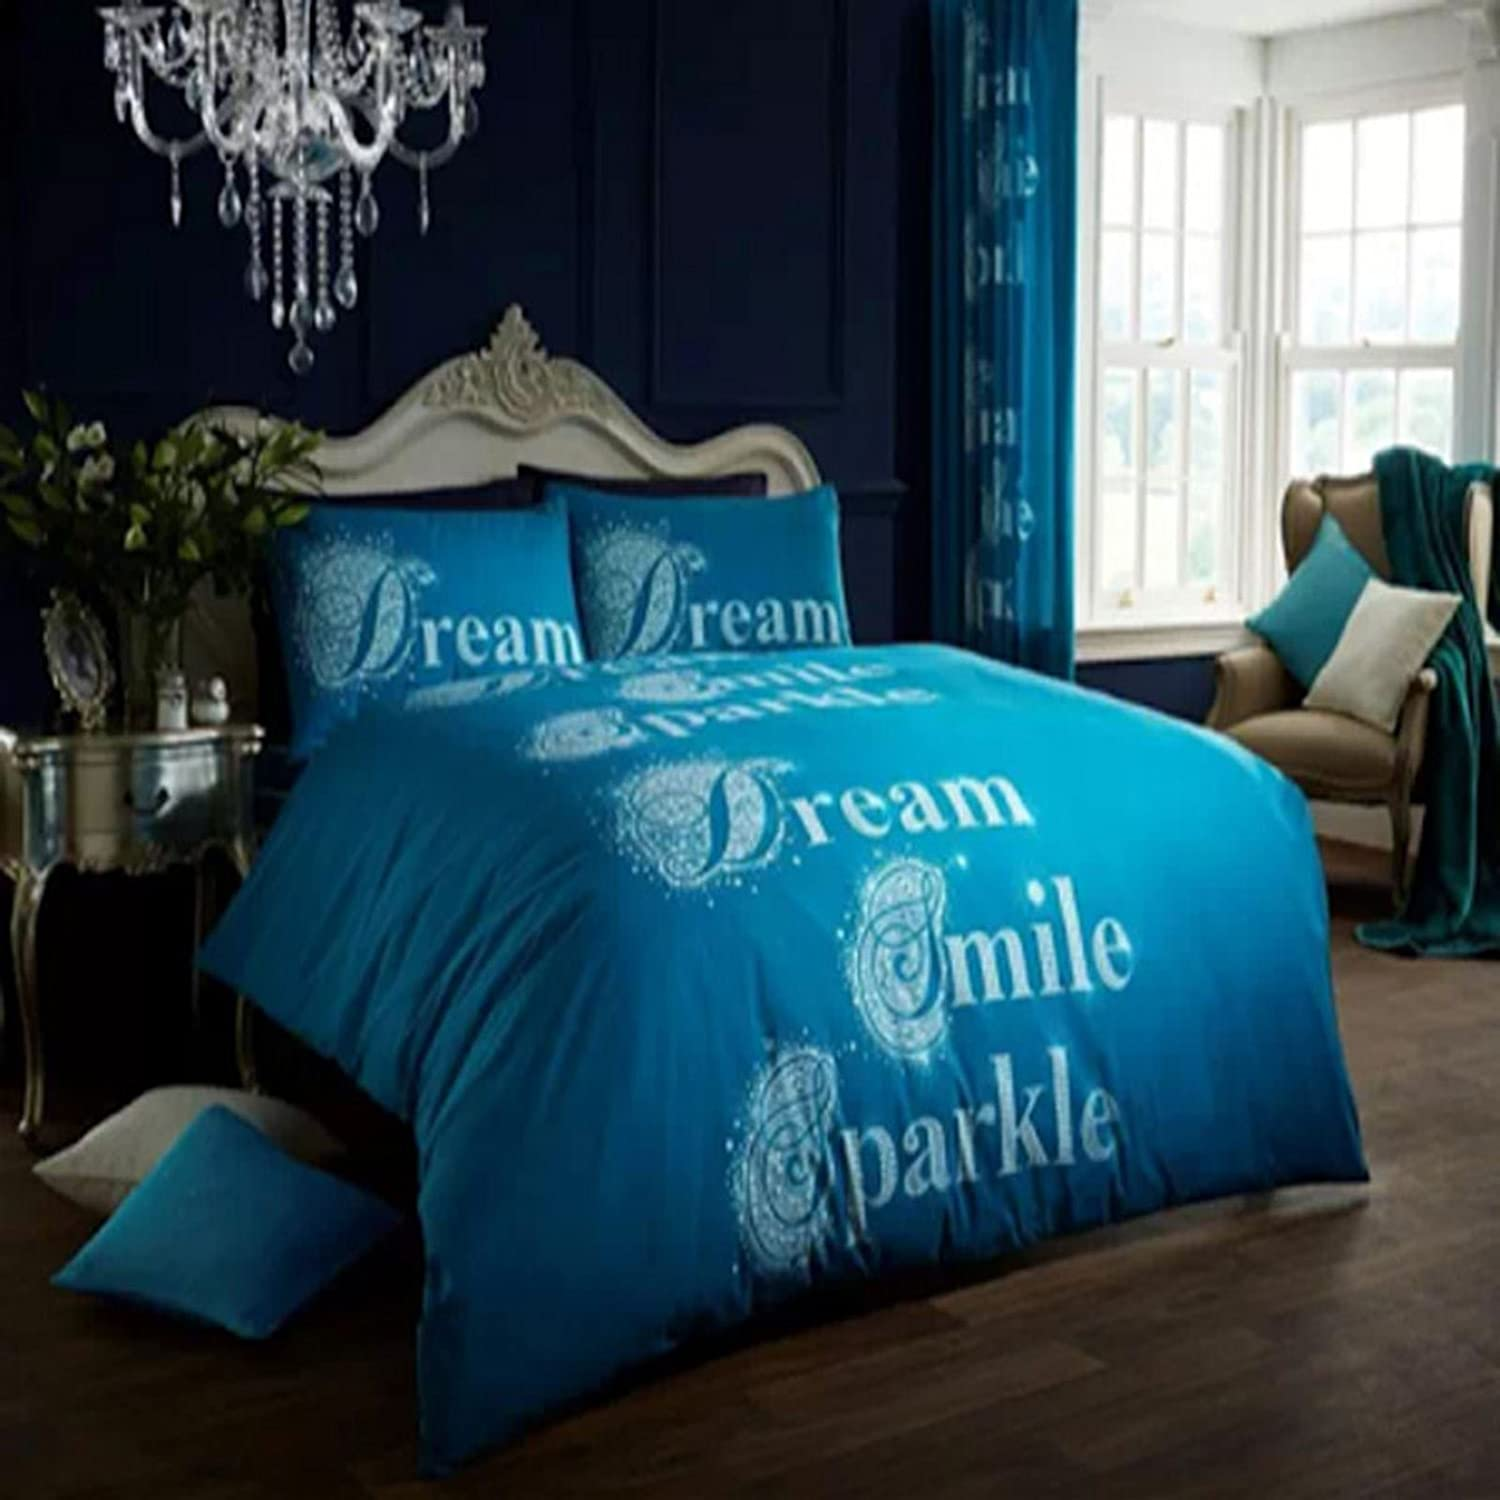 DESIGNER PRINTED BEDDINGS DREAM SMILE SPARKLE DUVET QUILT COVER SHEET PILLOW SET[Teal ,Single] Unbranded